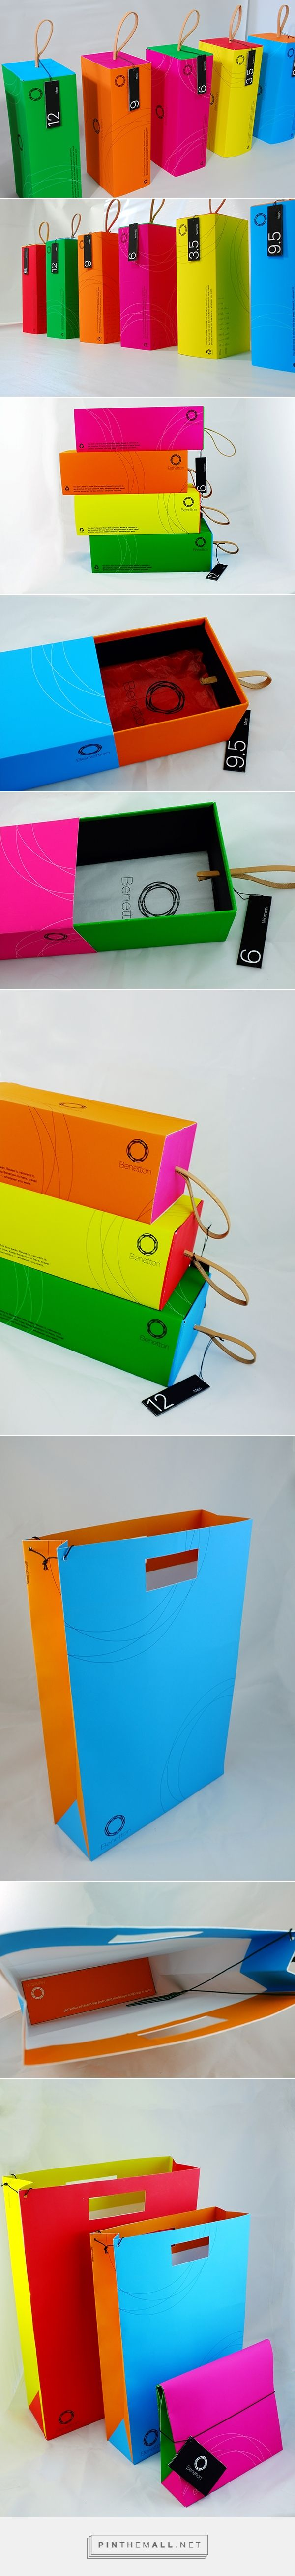 Benetton In-store packaging on Behance by Yiling Tsai curated by Packaging Diva PD. If you like color then this is the pin for you.